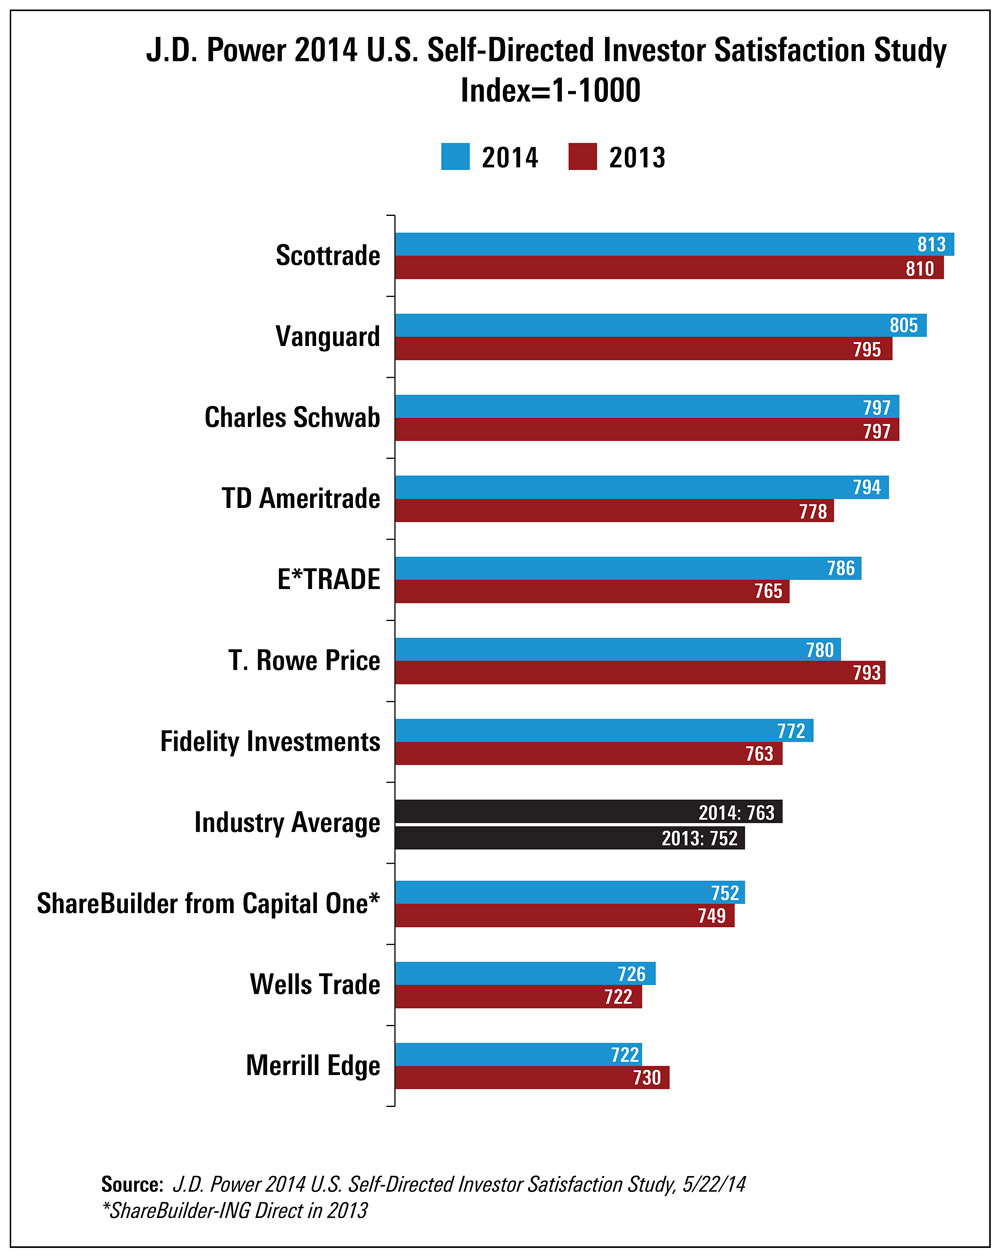 J.D. Power Rankings: Top Firms for Self-Directed Investors. Source: J.D. Power & Associates